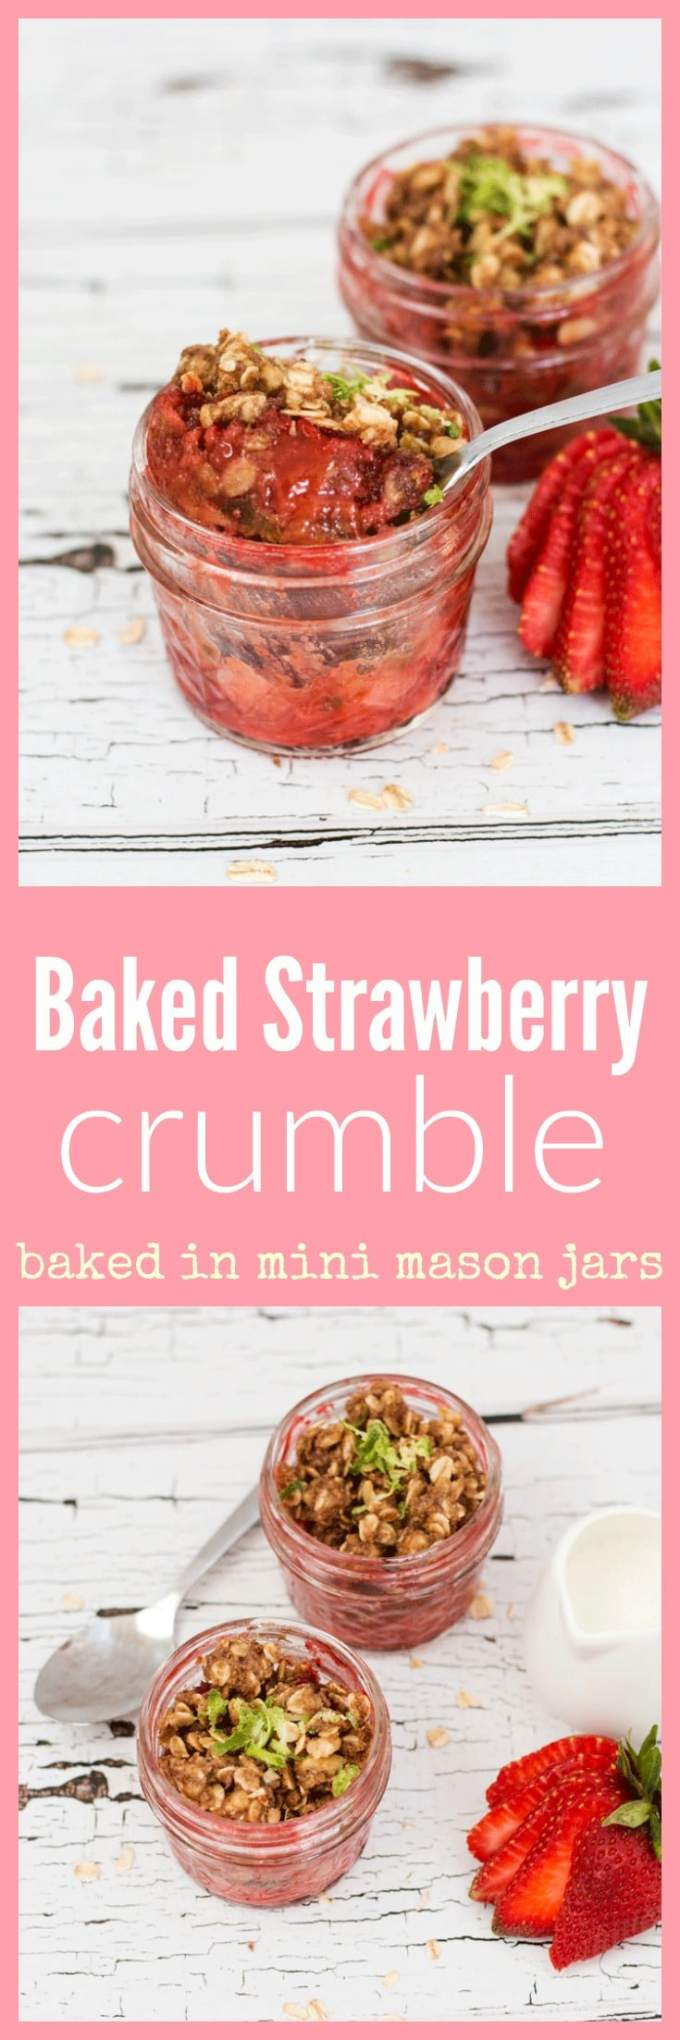 Strawberry crumbles baked right in mini mason jars make for great little pots of grab-n-go breakfast goodness. Alternatively pair with some ice cream and you have some super cute individual dessert pots.